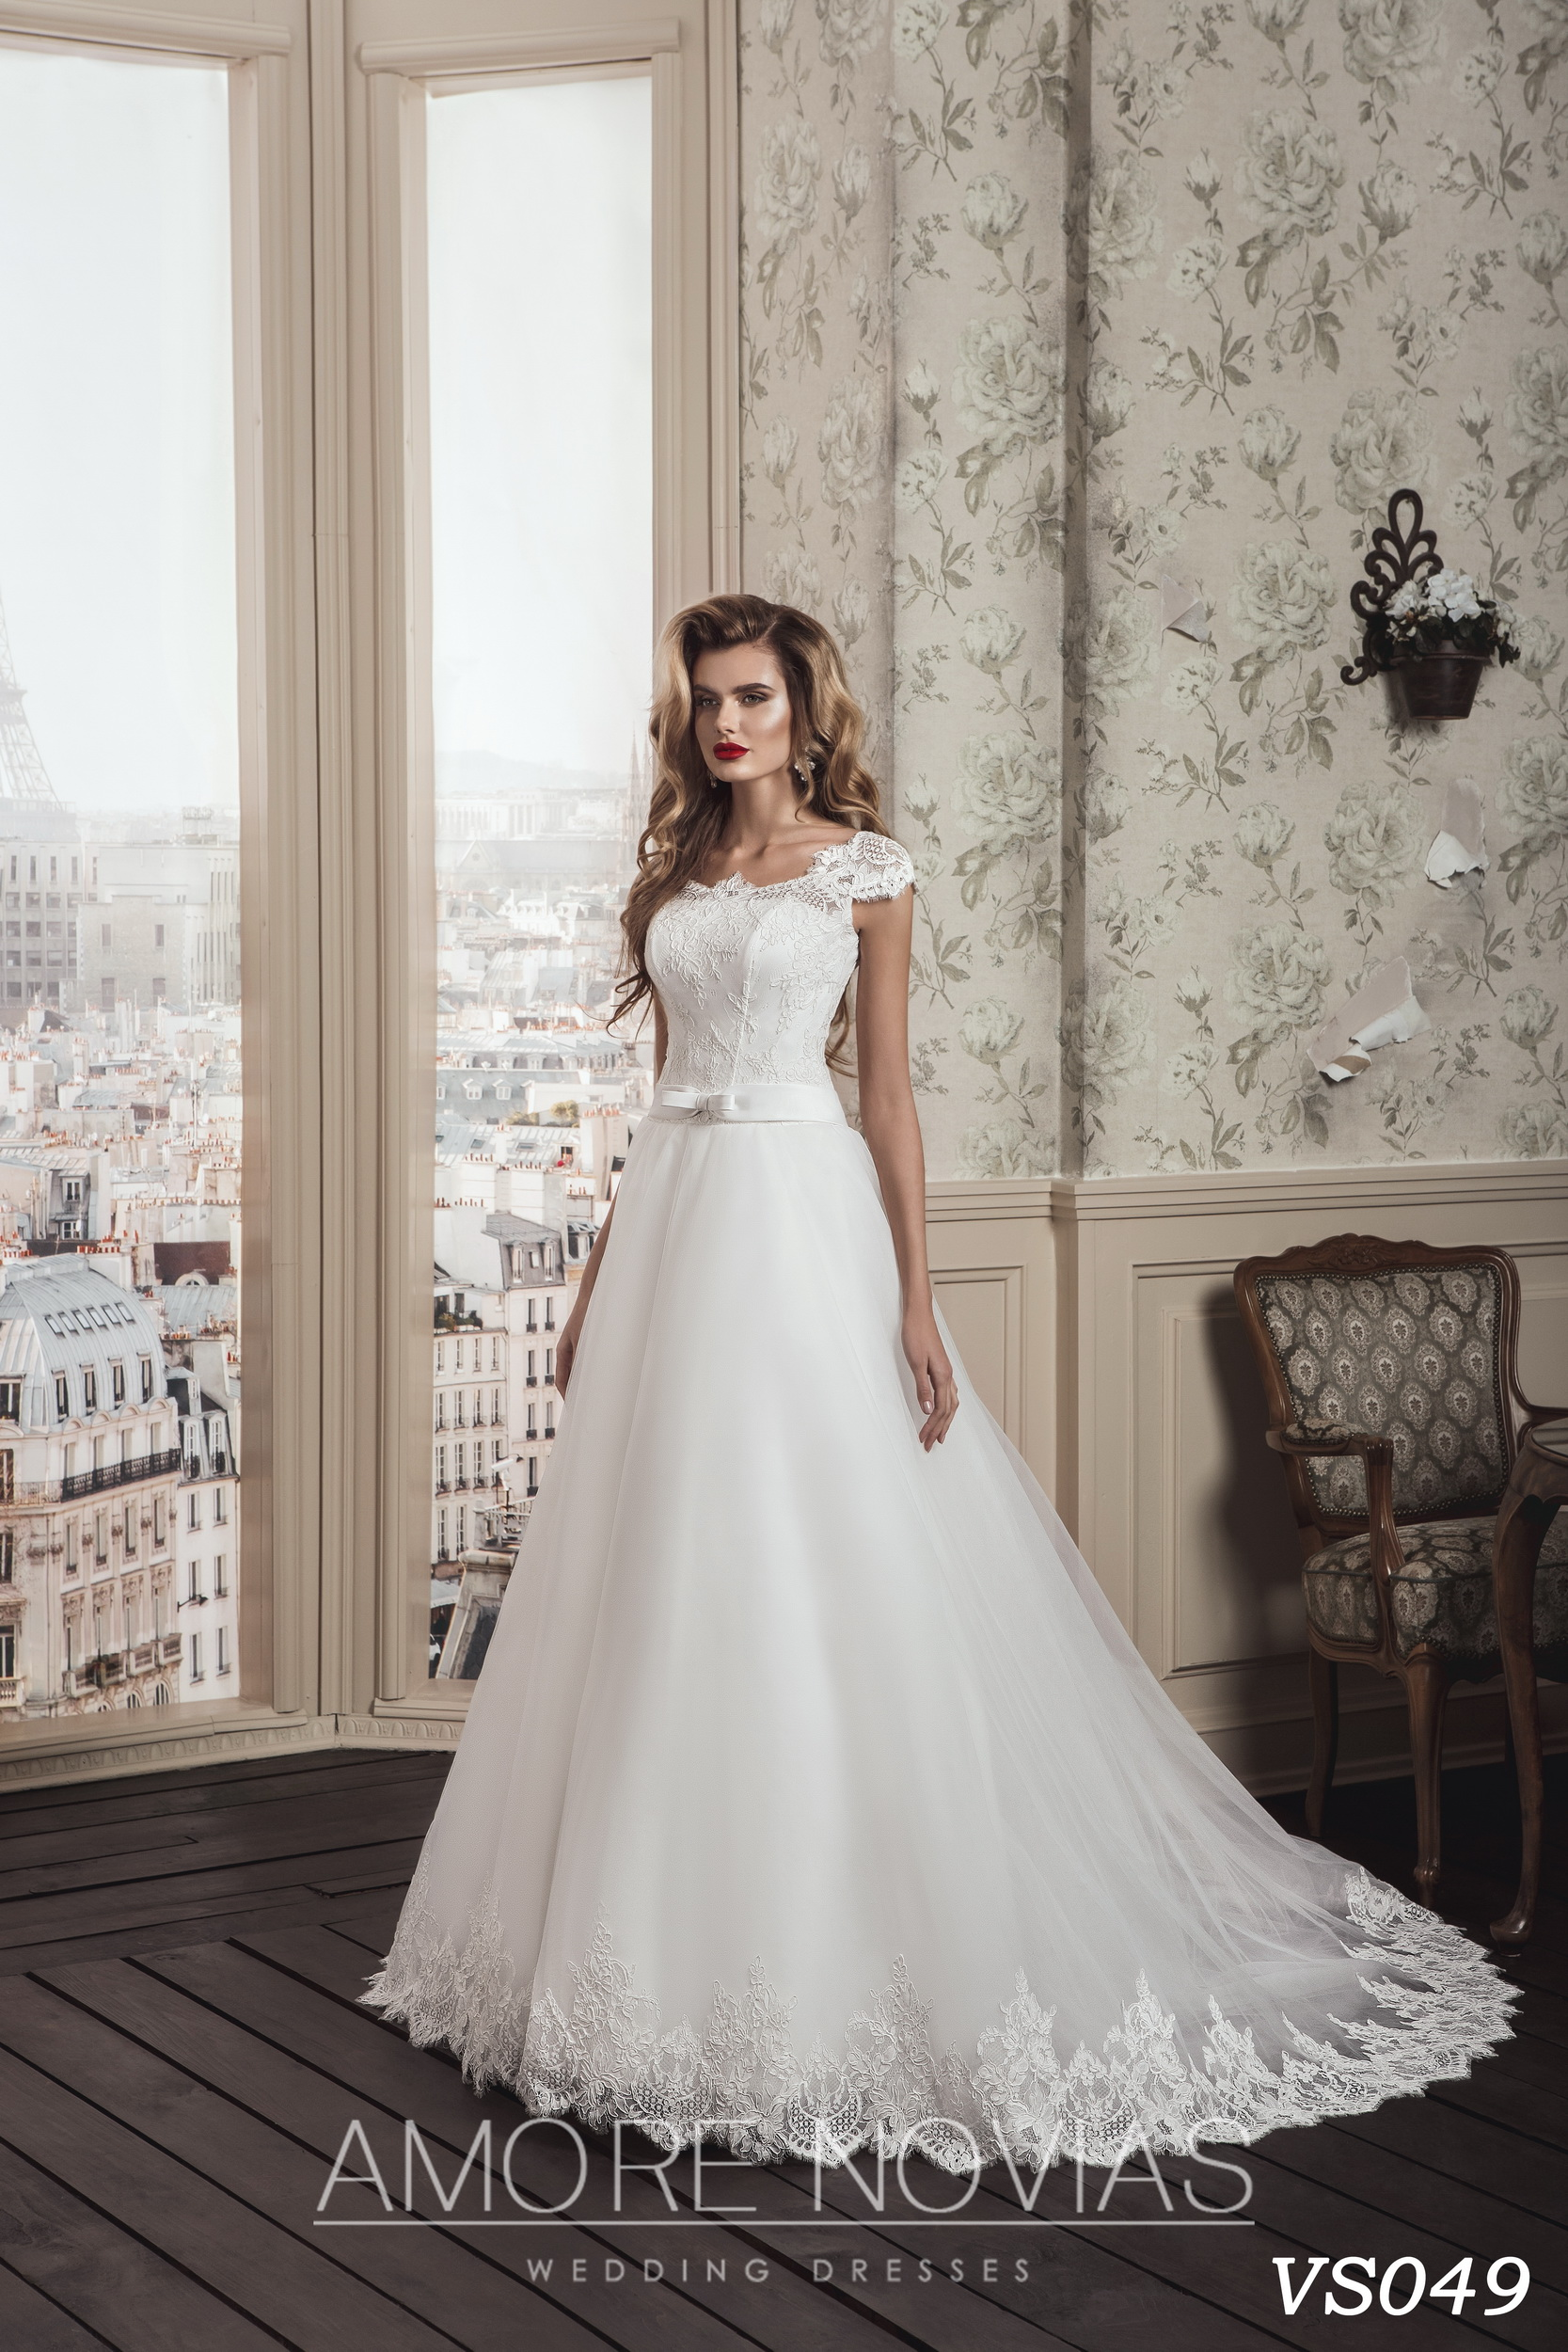 https://amore-novias.com/images/stories/virtuemart/product/vs049.jpg